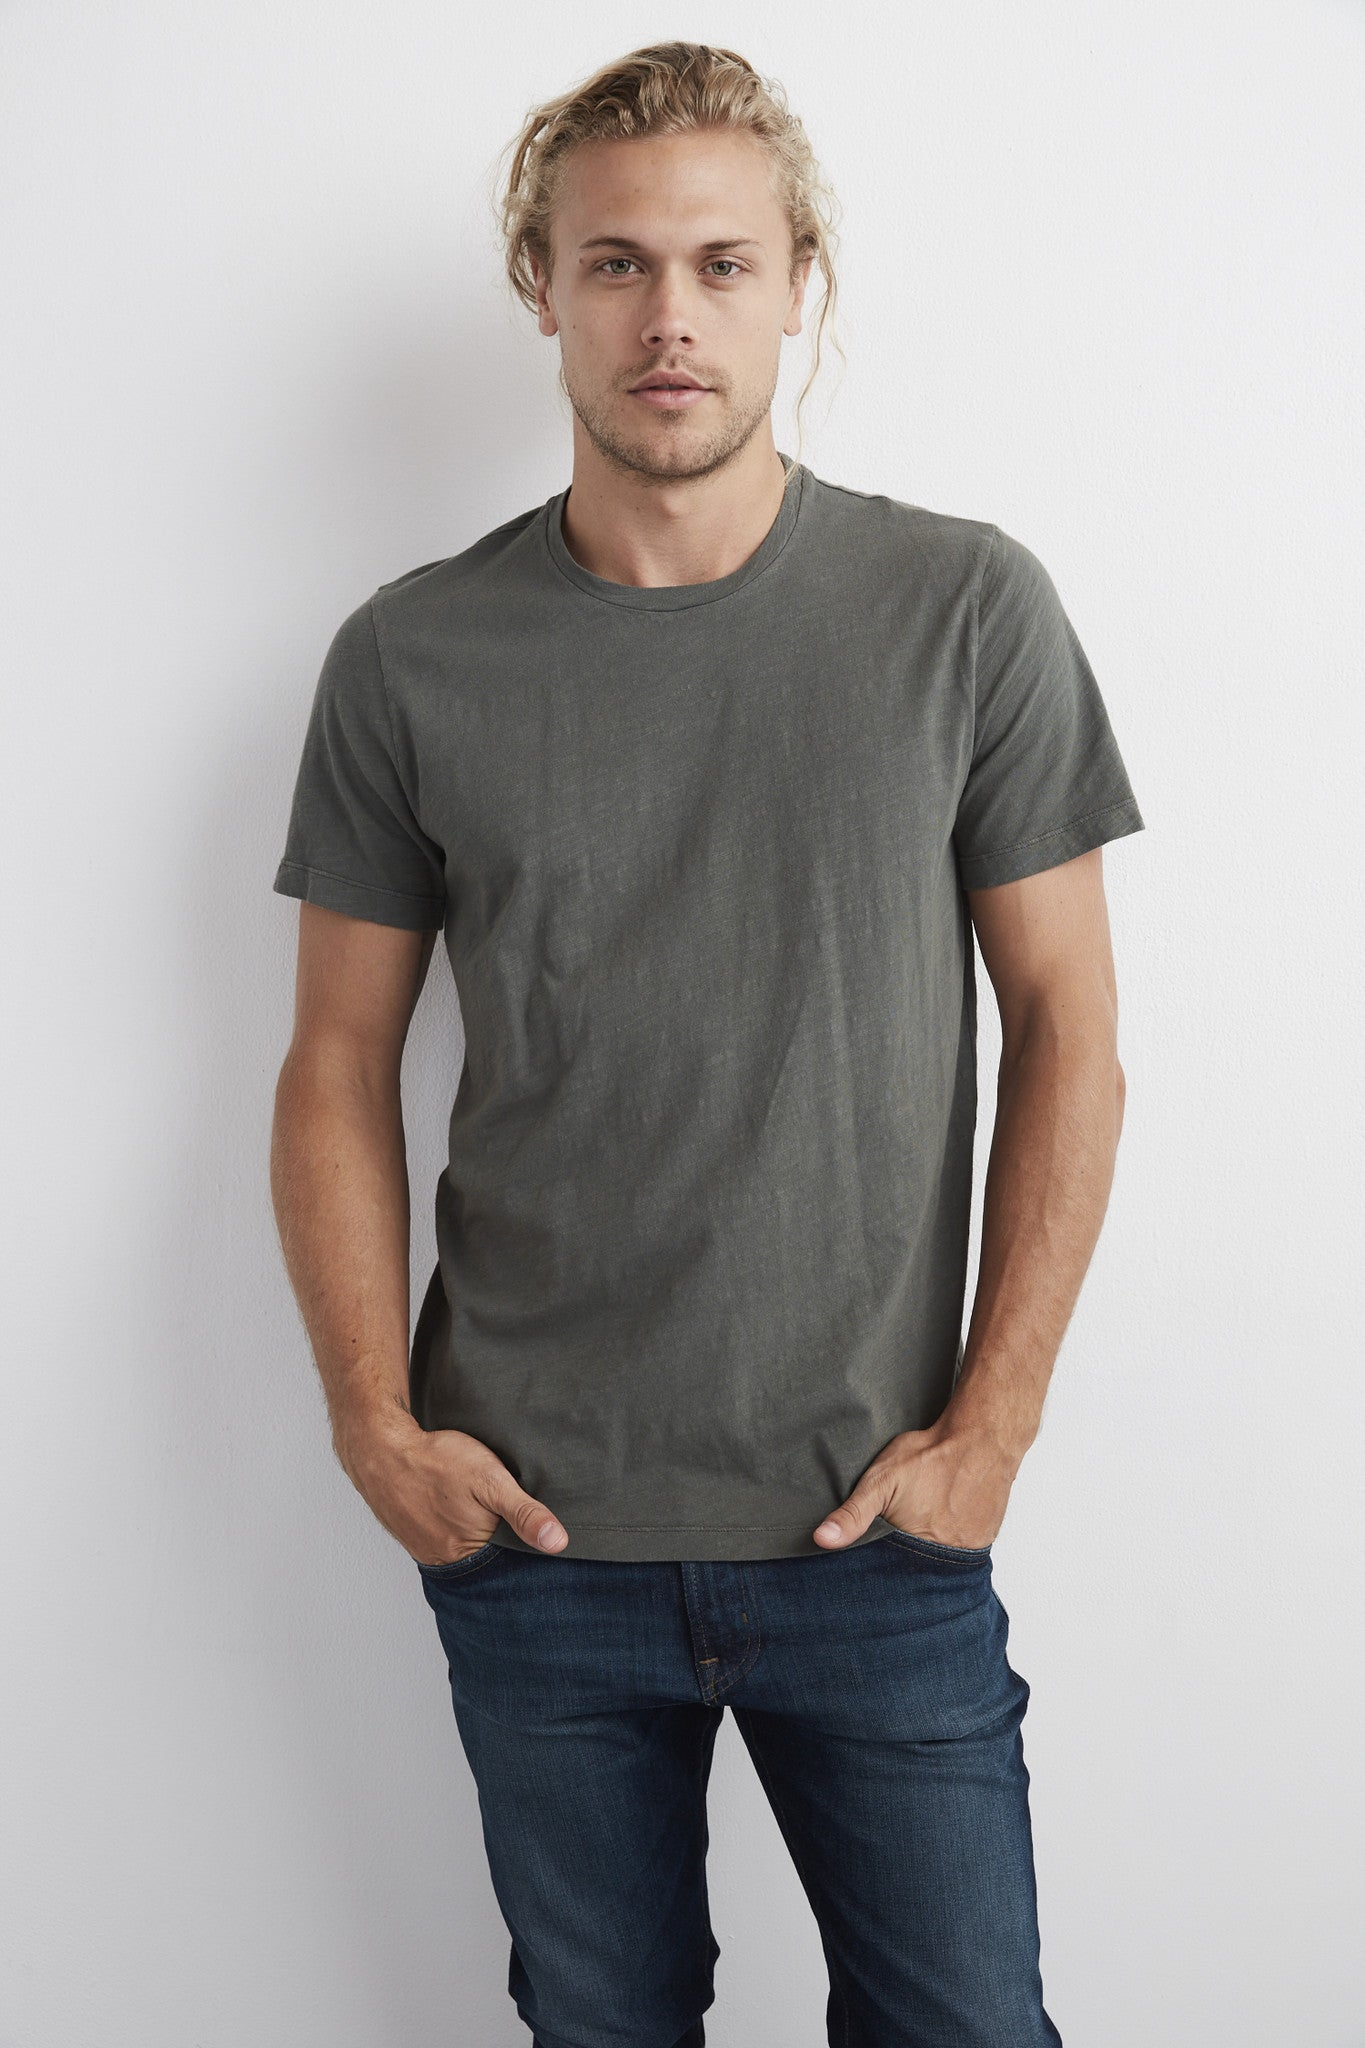 ARDEN COTTON SLUB CREW NECK TEE IN EXHAUST